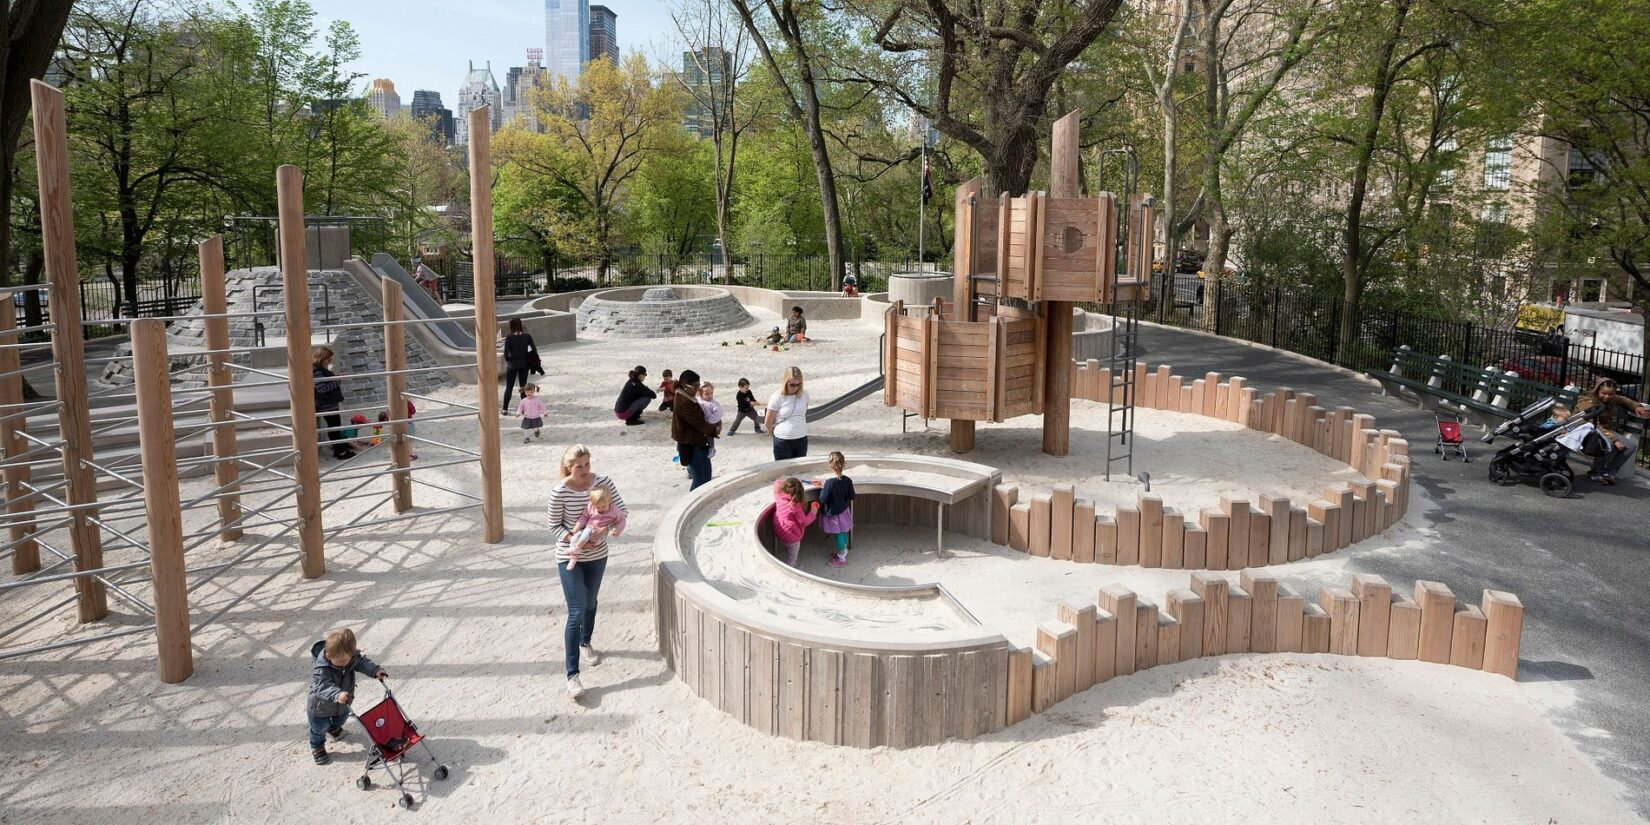 Children and caregivers playing at the sandy end of the playground, in Spring.